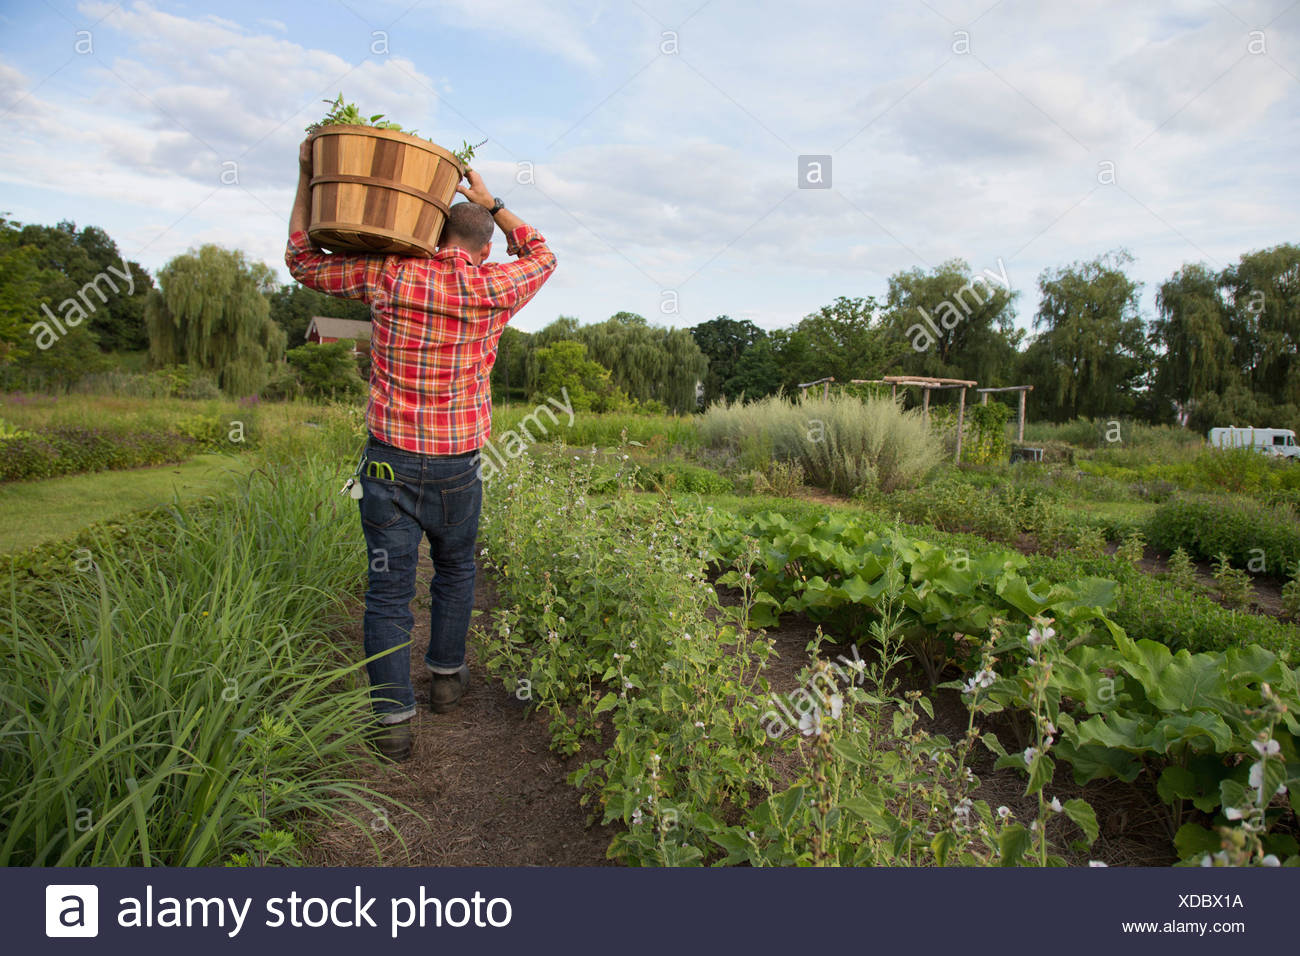 Mature man carrying basket of leaves on herb farm - Stock Image